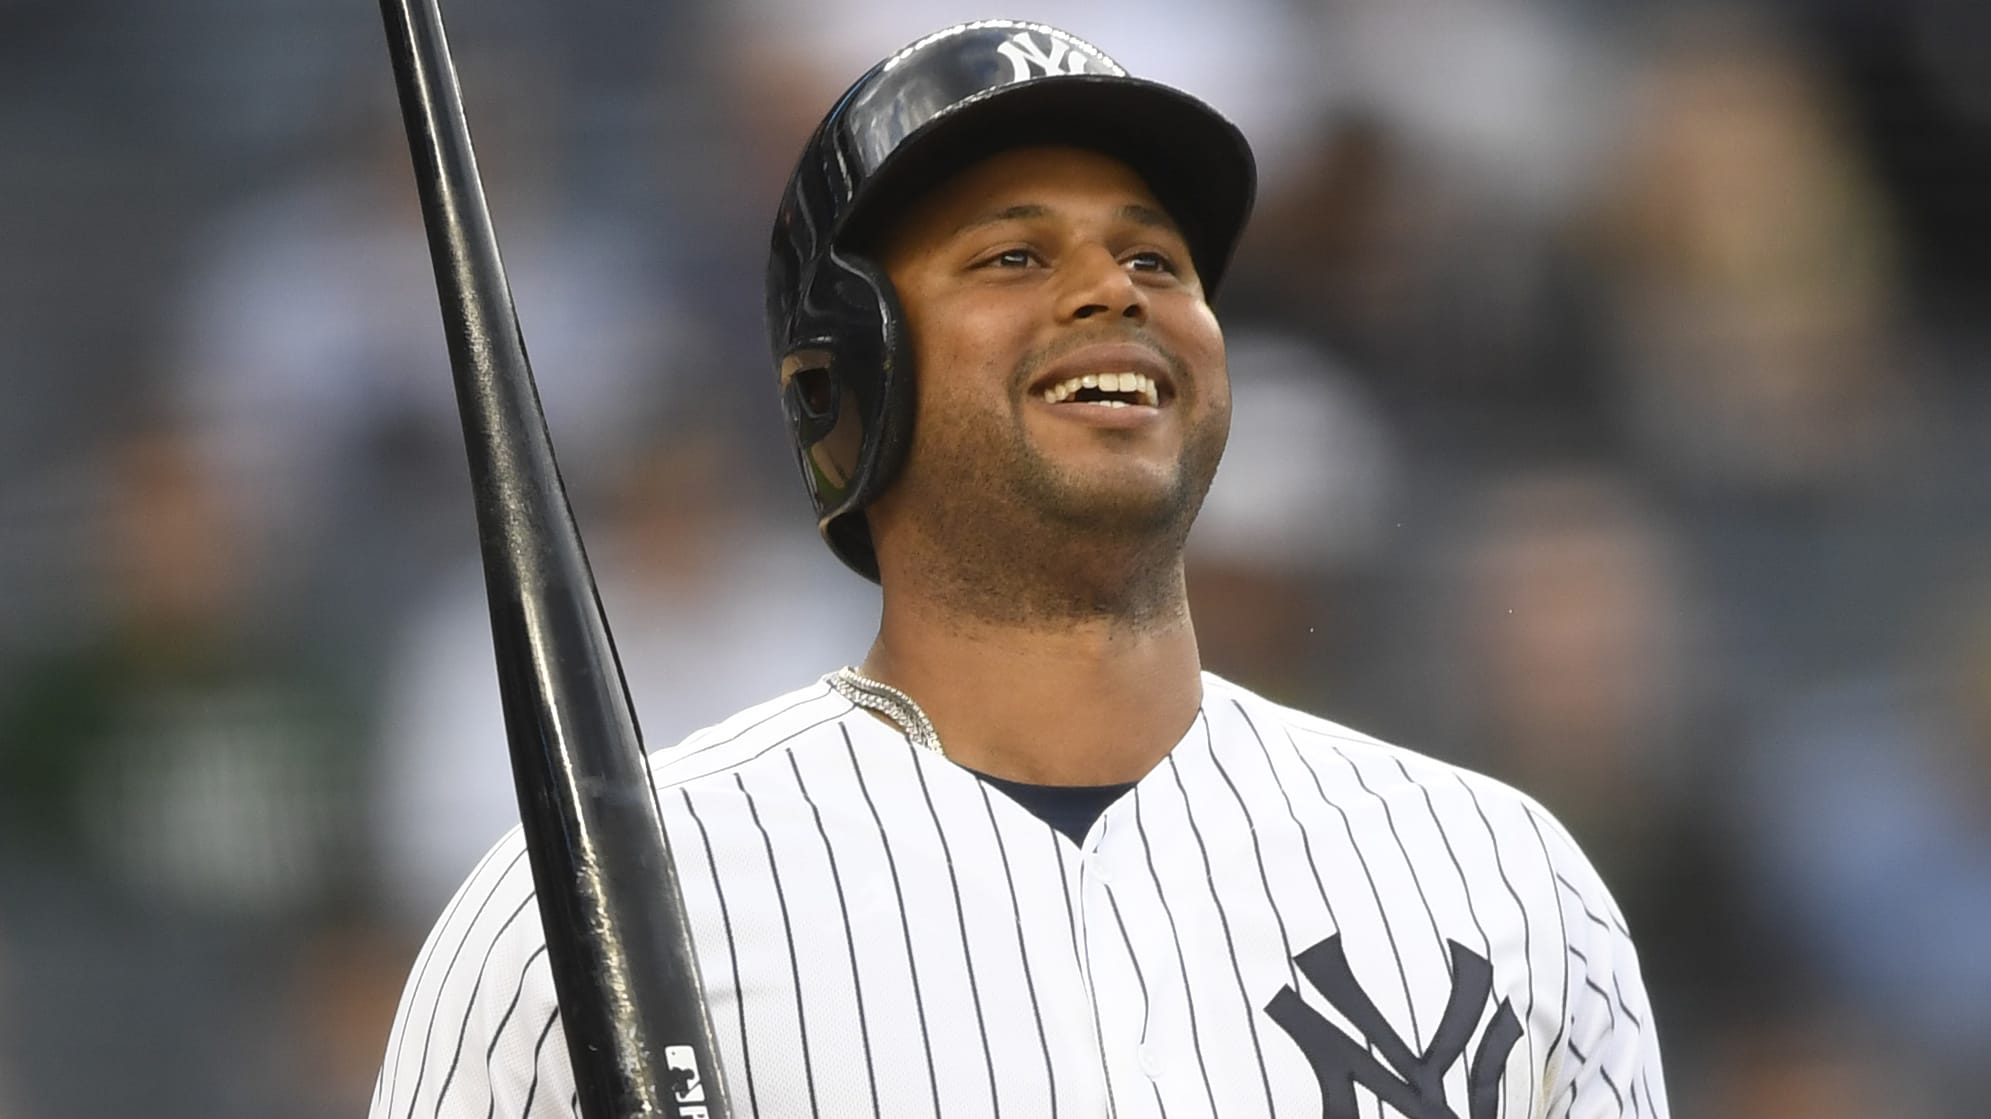 NEW YORK, NEW YORK - MAY 15: Aaron Hicks #31 of the New York Yankees reacts after hitting during the first inning of game two of a double header against the Baltimore Orioles at Yankee Stadium on May 15, 2019 in the Bronx borough of New York City. (Photo by Sarah Stier/Getty Images)